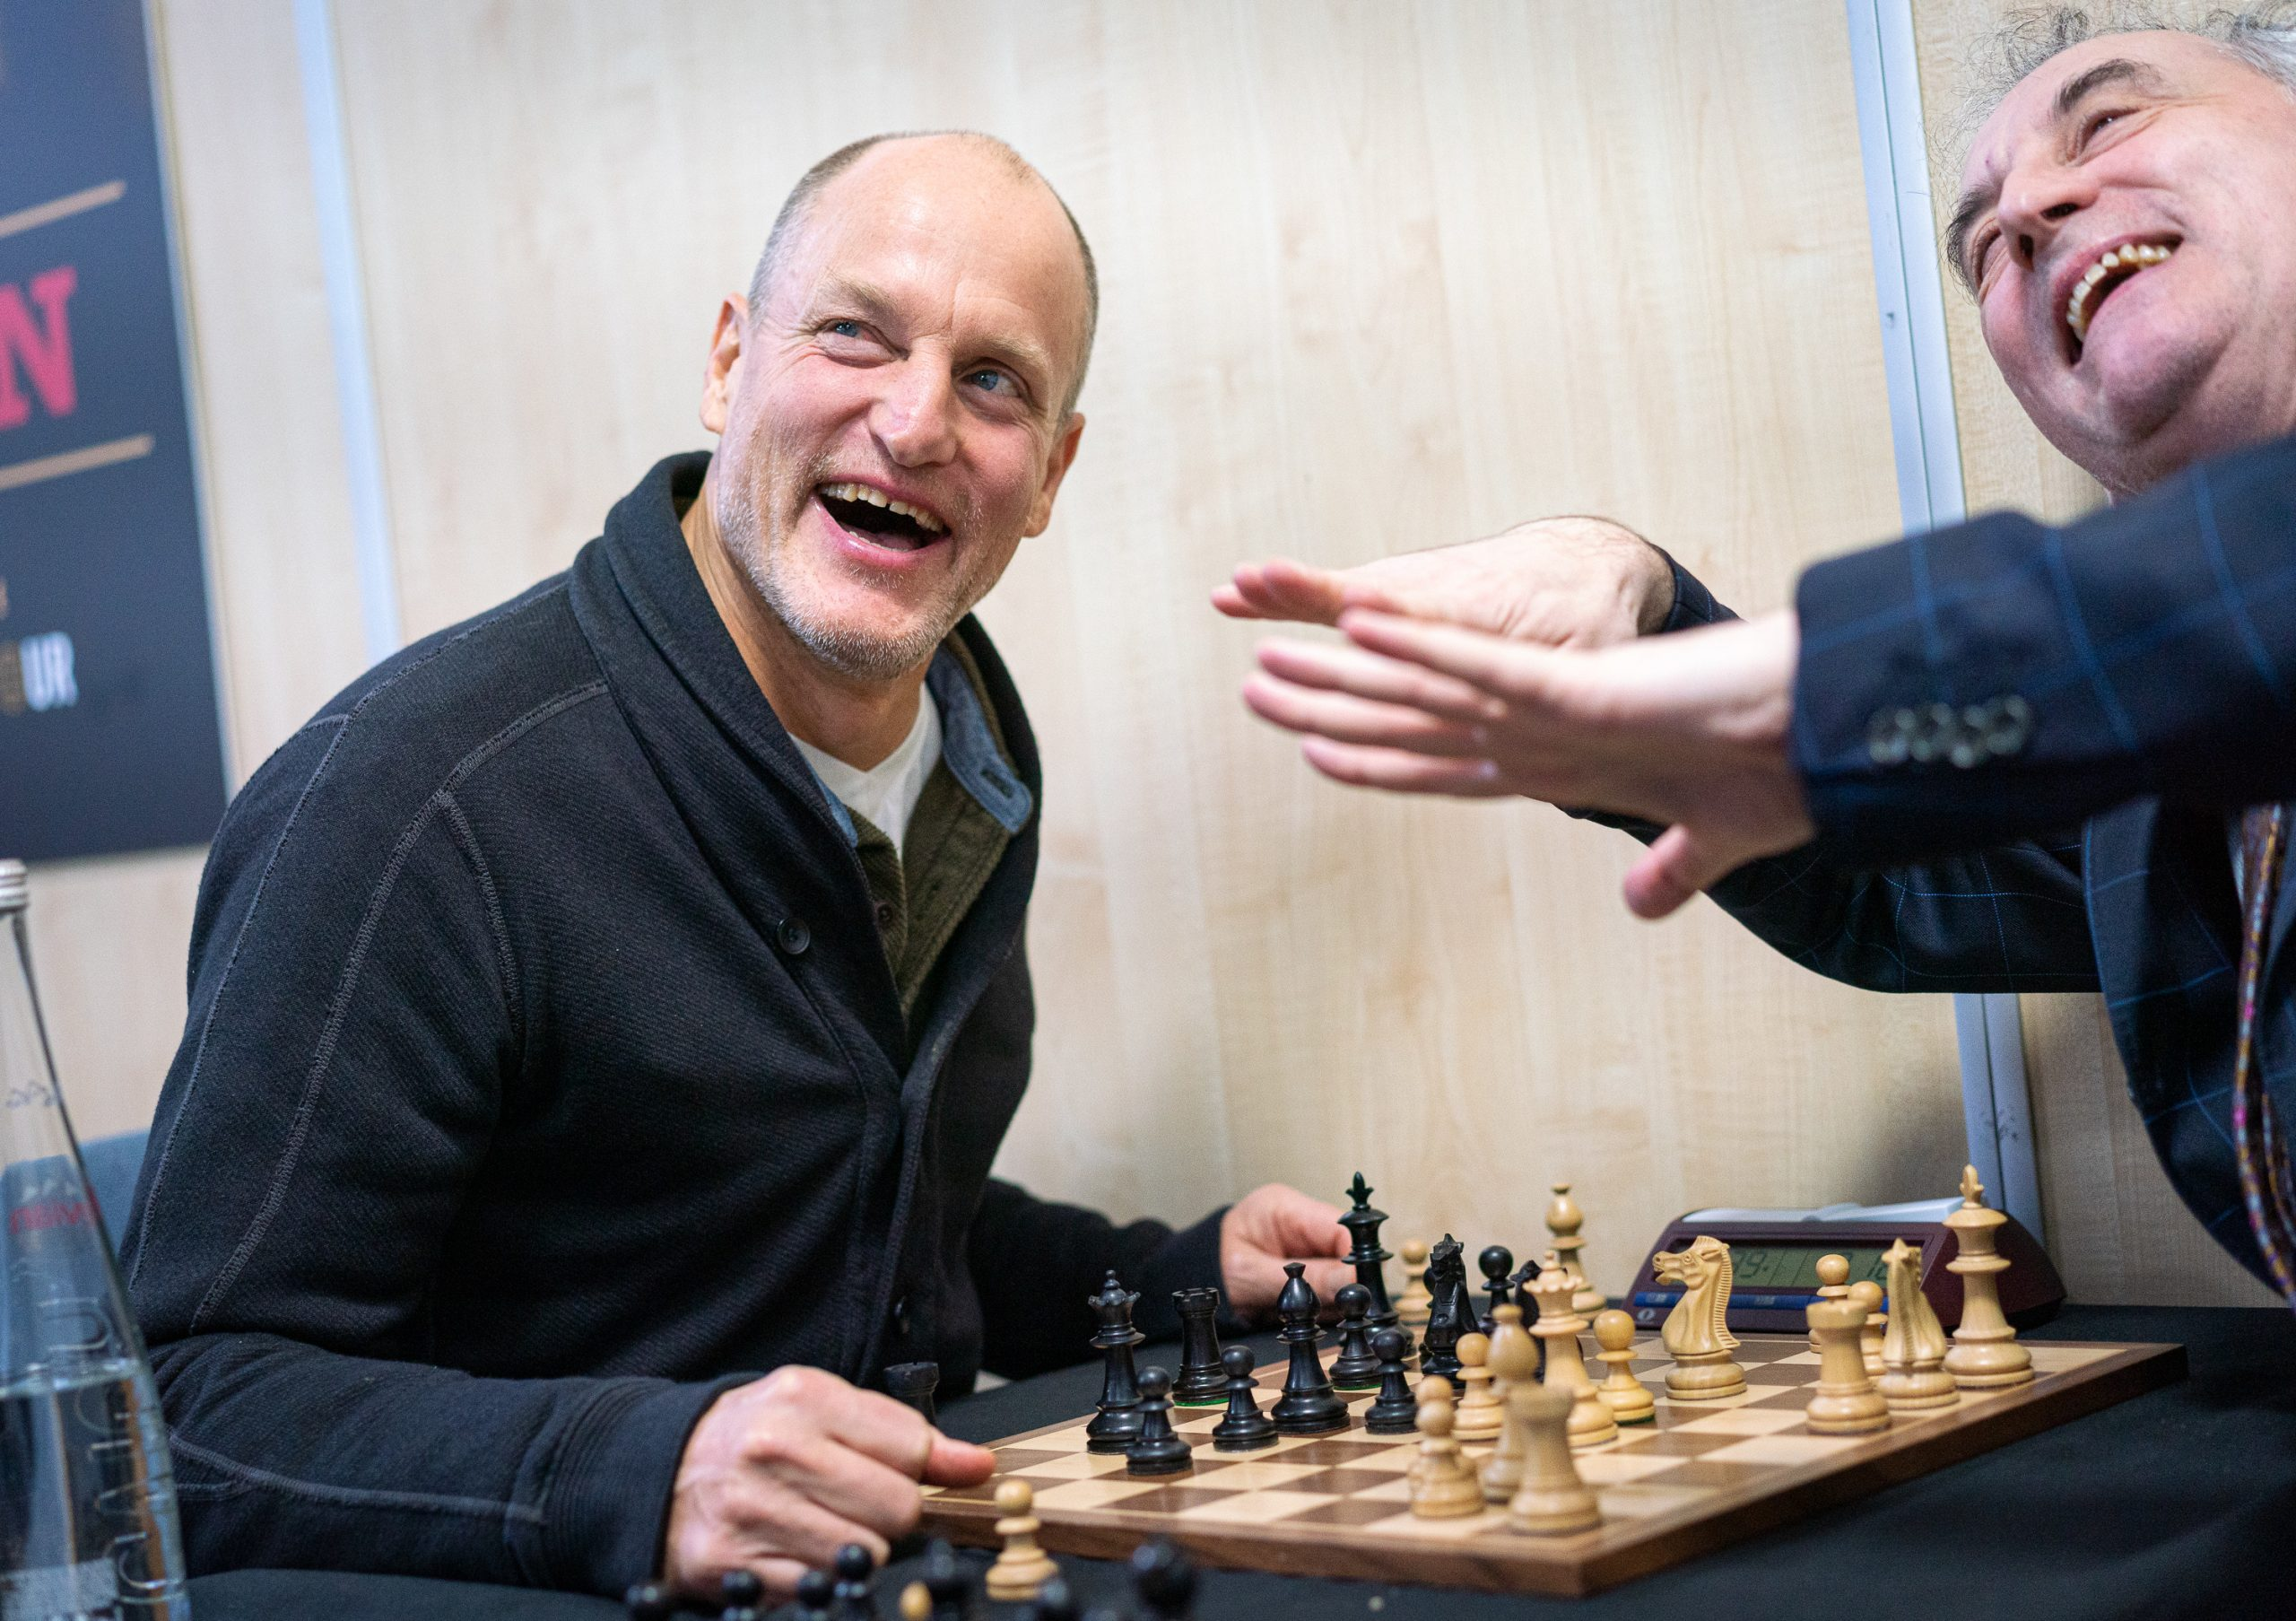 These games... that make you smile! | Image courtesy of Grand Chess Tour